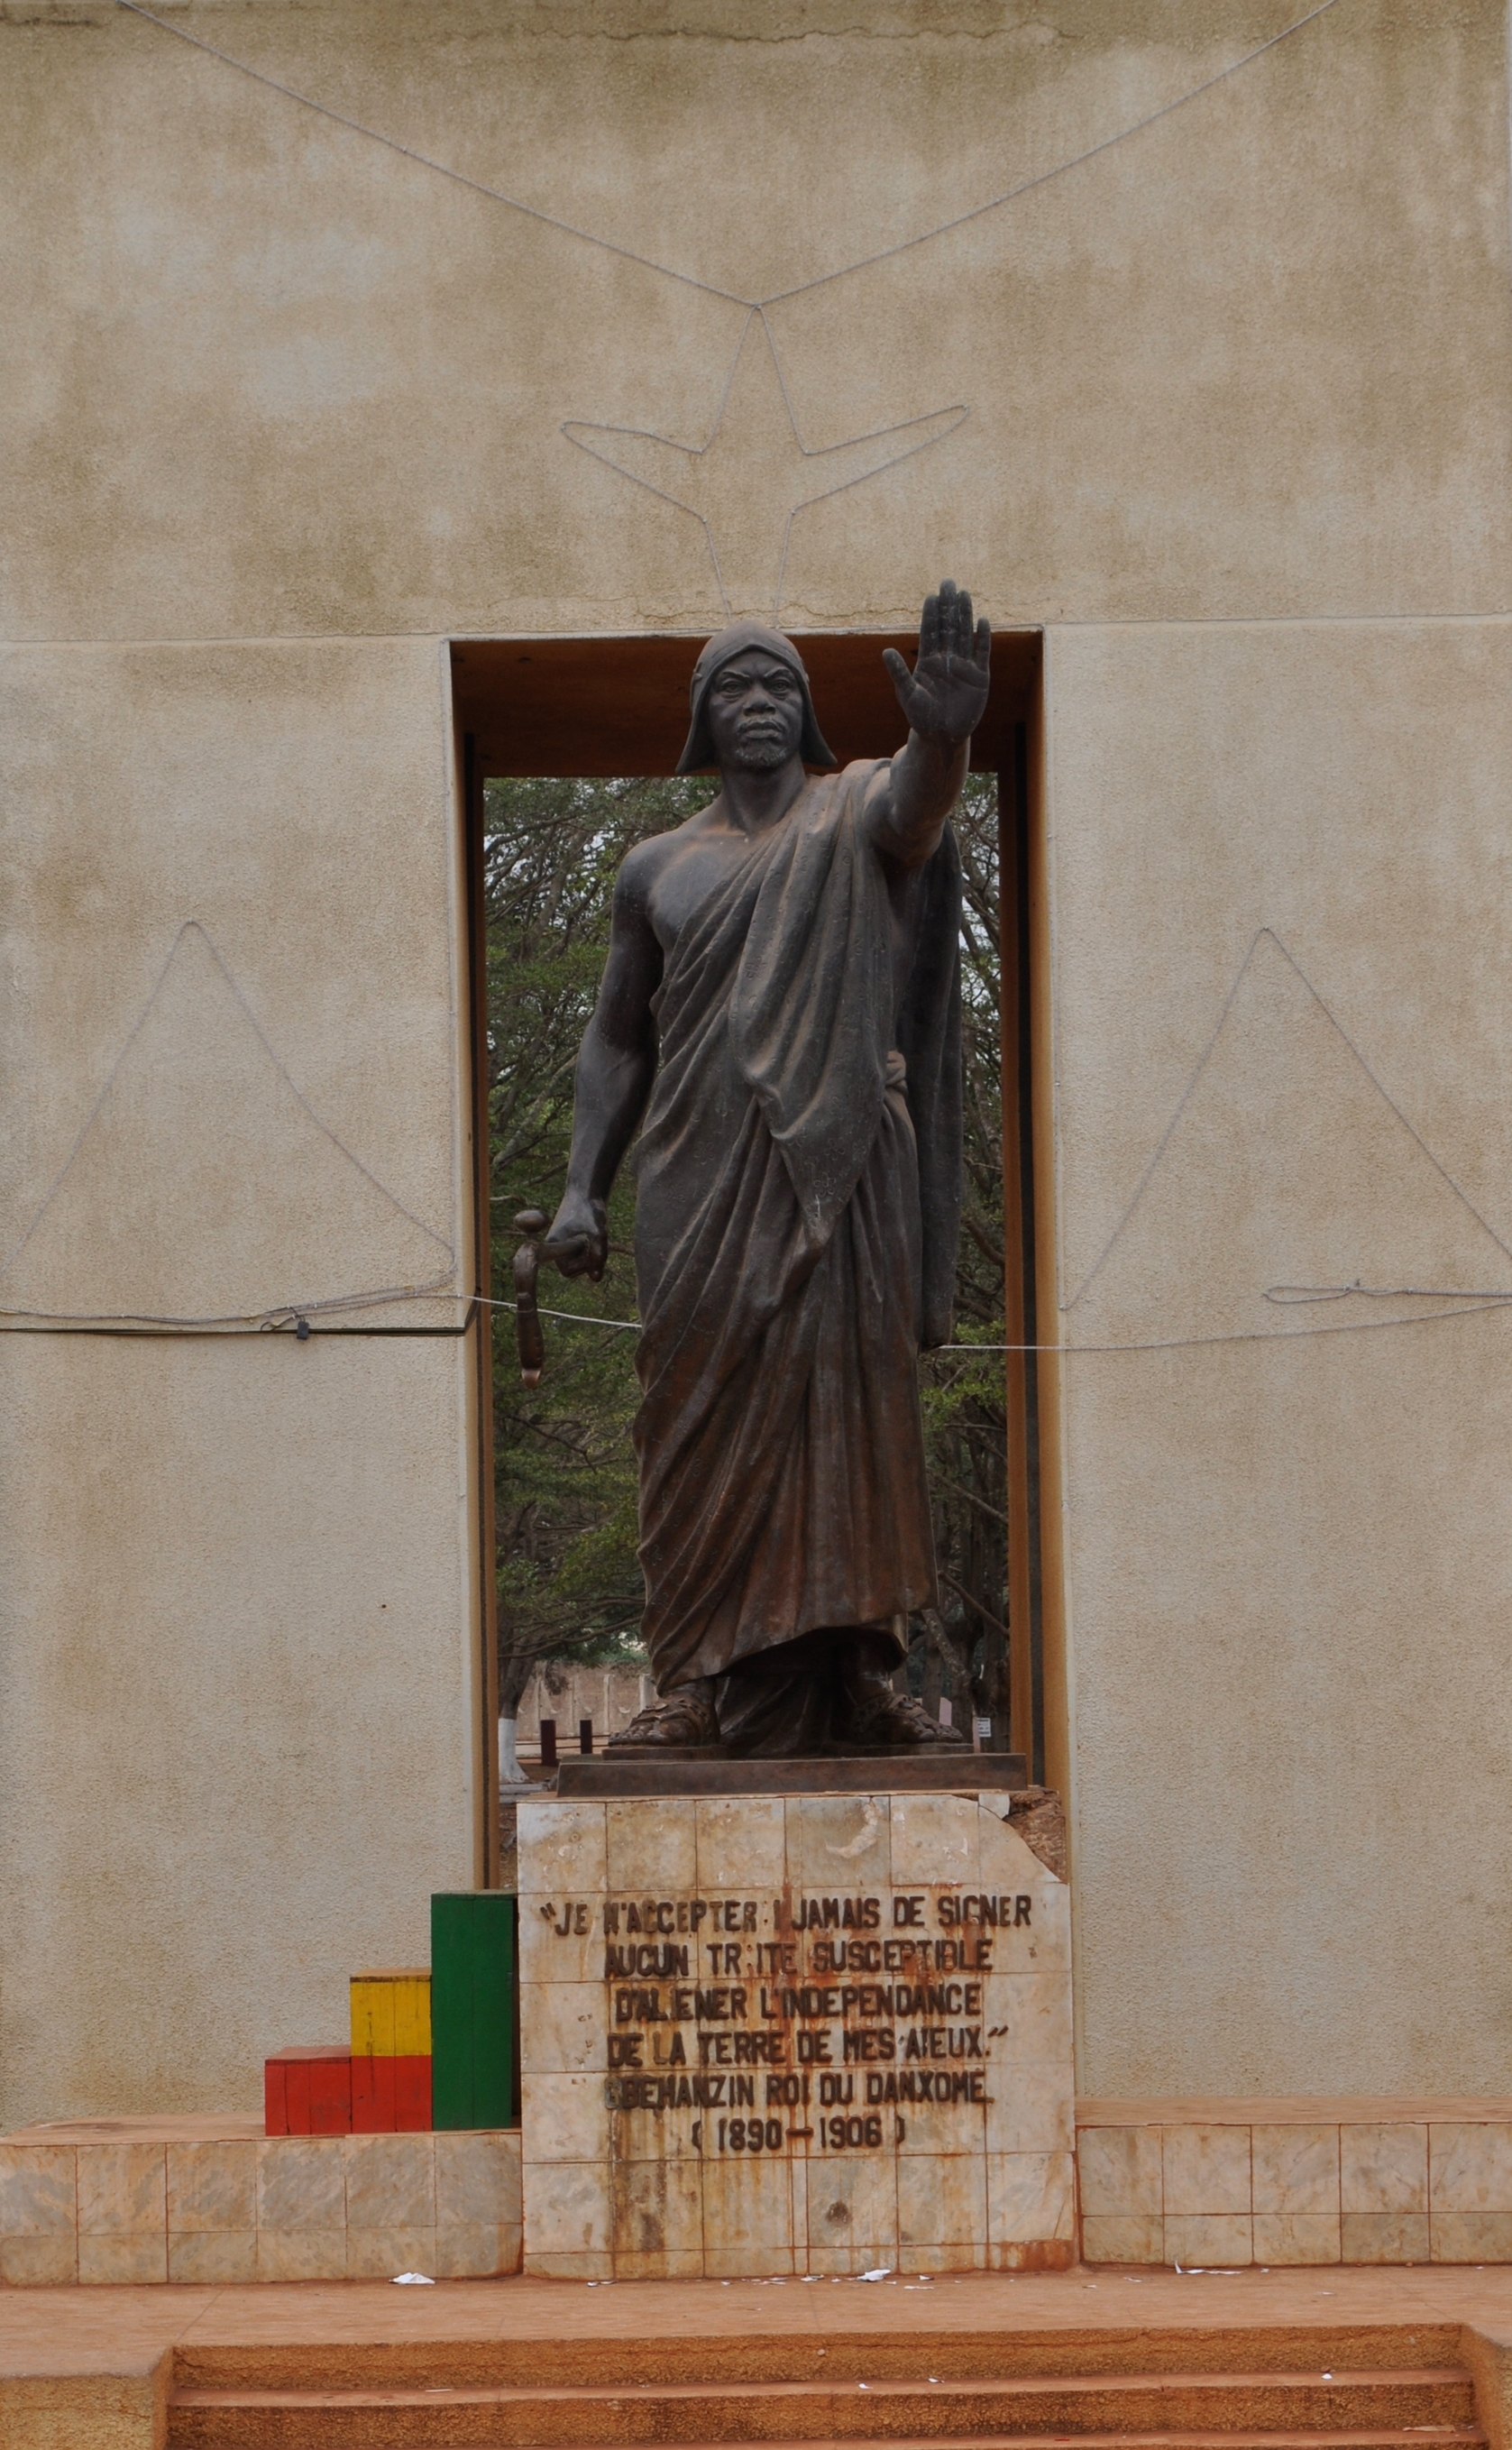 Benin - Behanzin monument